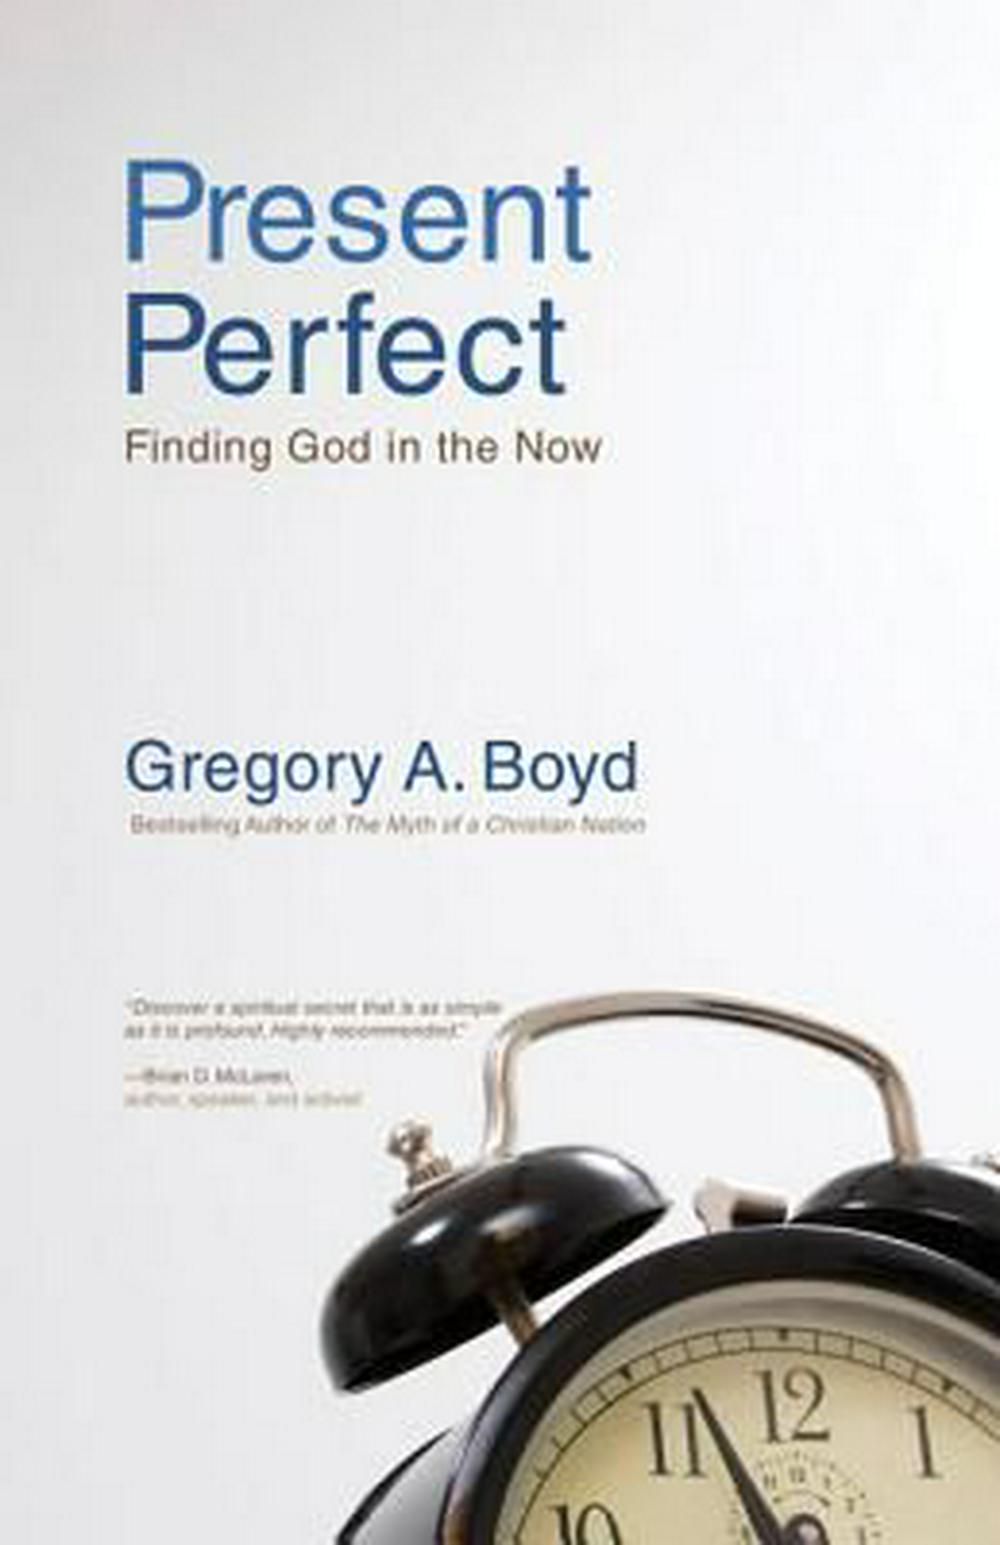 Present Perfect by Gregory A. Boyd, ISBN: 9780310283843